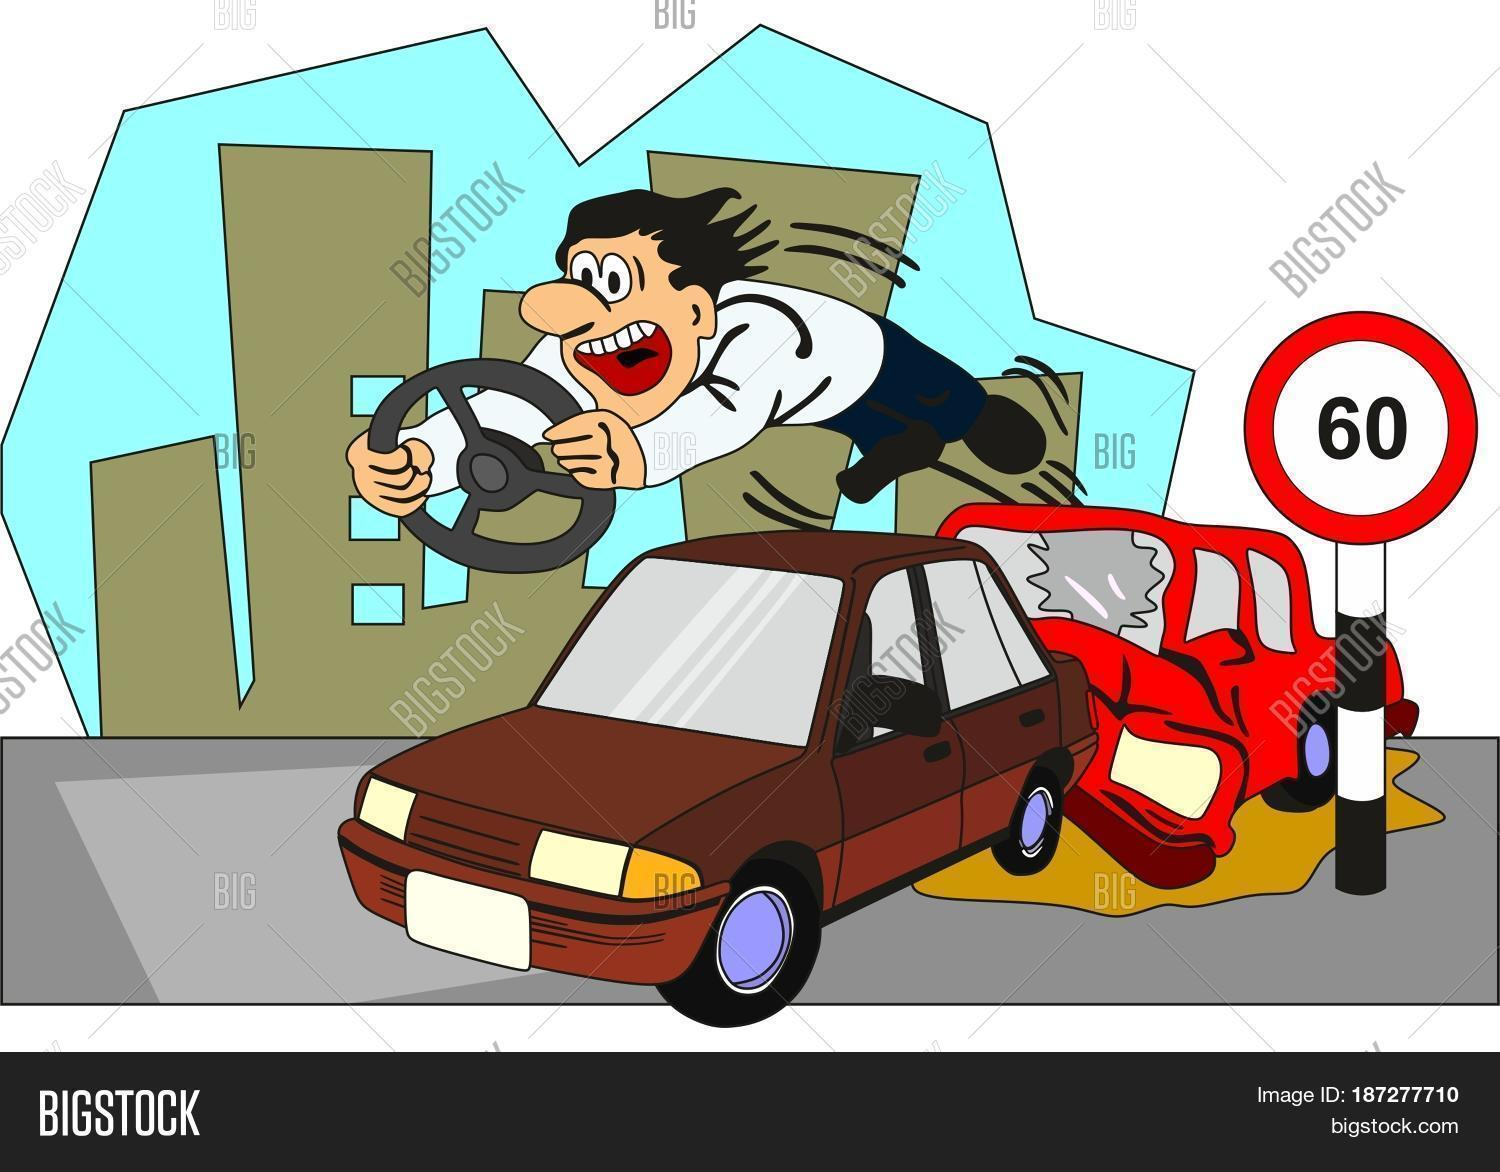 Car Accident Conceptual Drawing Image & Photo | Bigstock